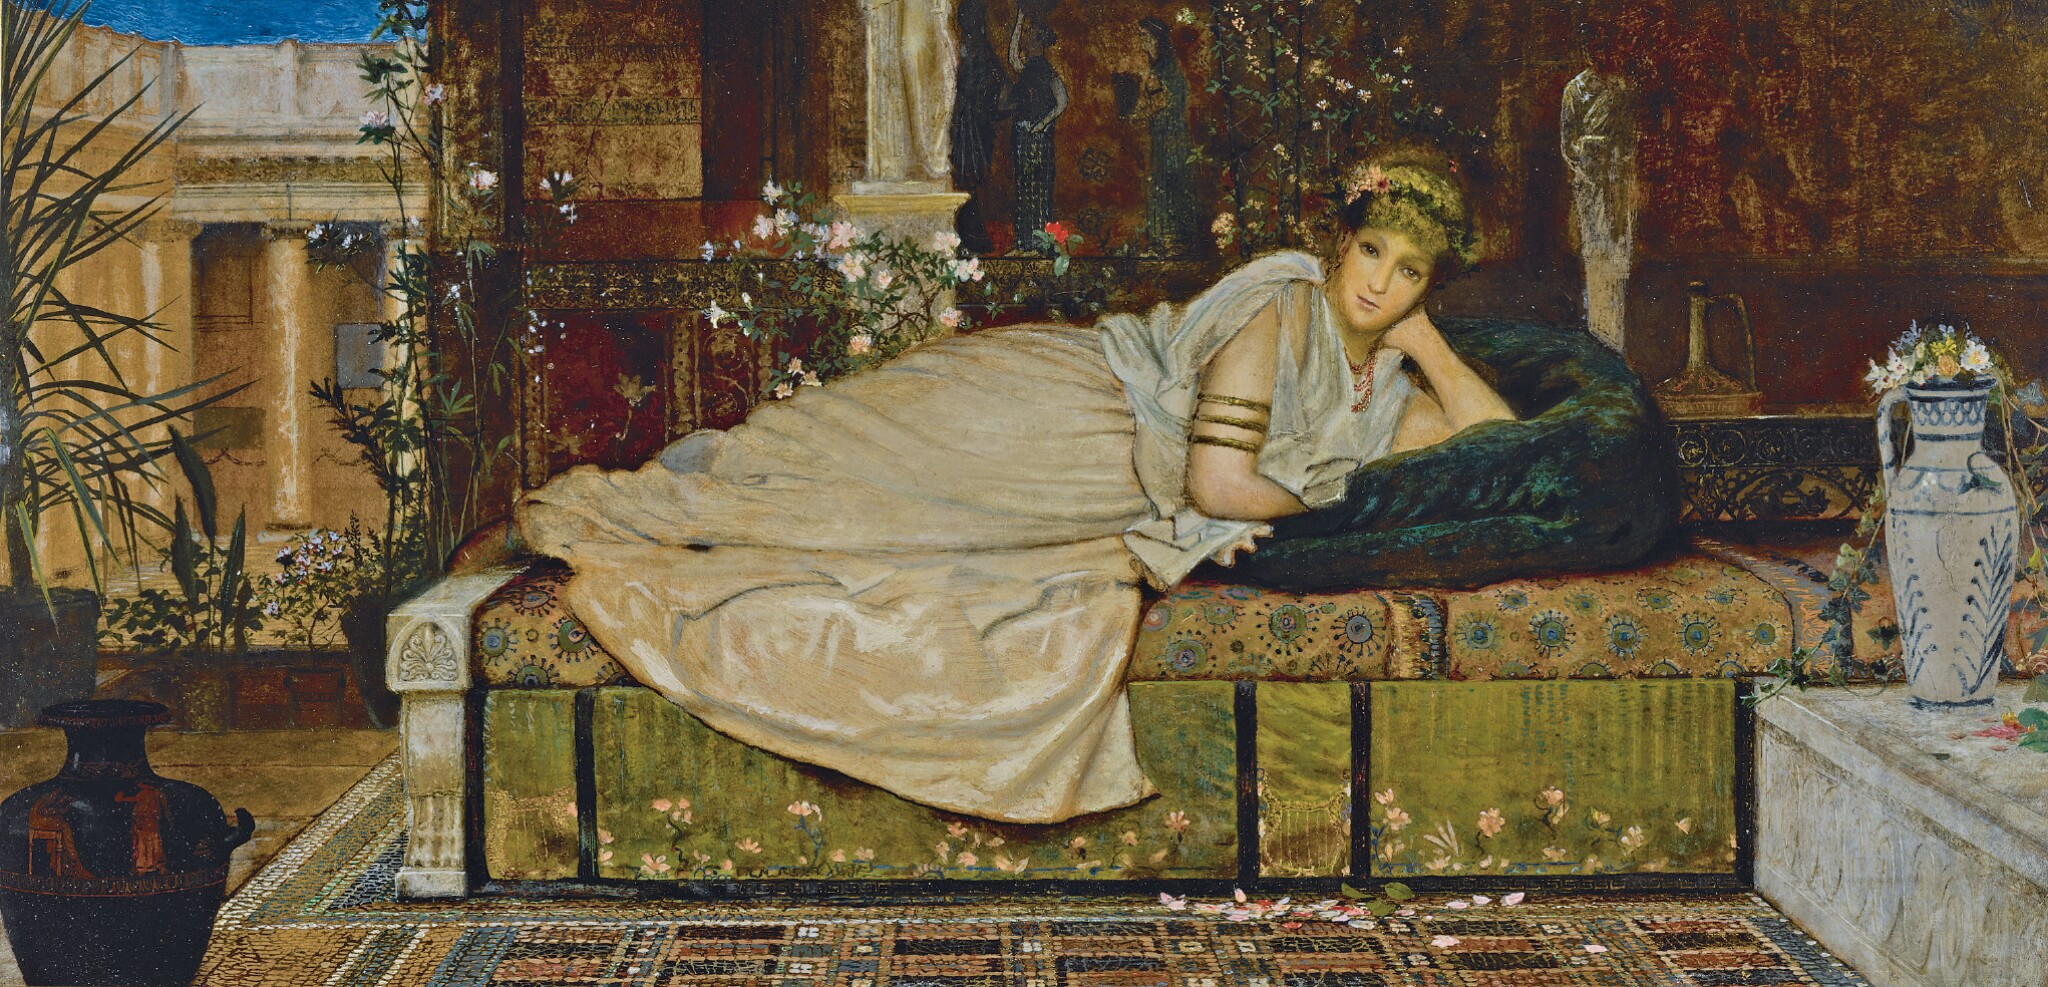 JOHN ATKINSON GRIMSHAW | A Lady in a Classical Interior